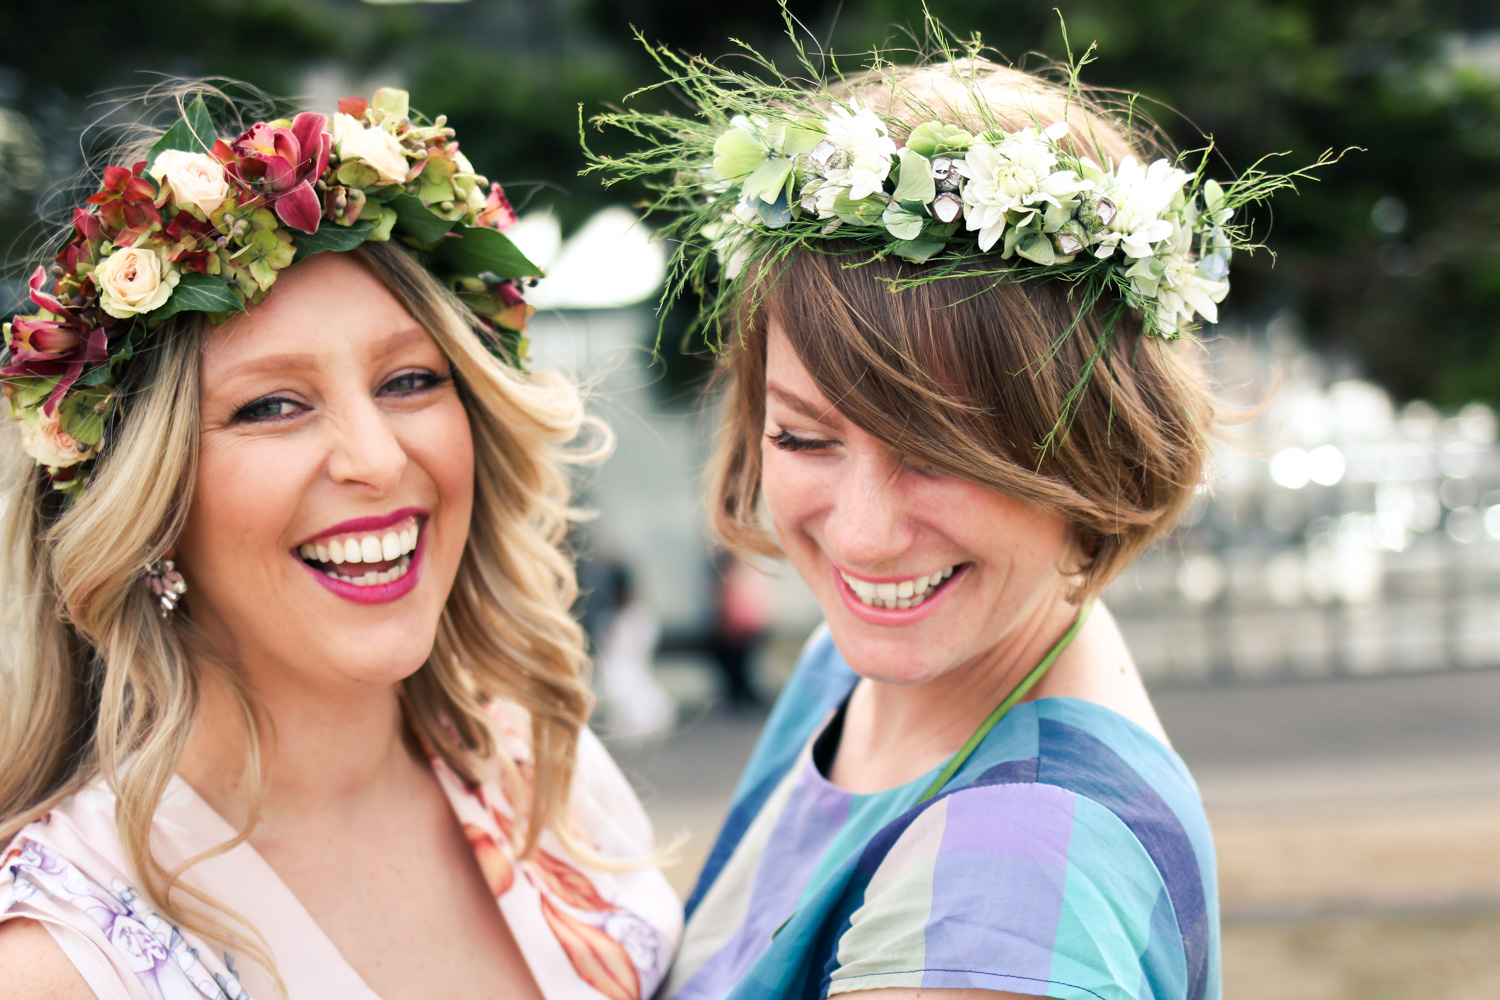 @findingfemme wears flower crown from Jenny Burke Florist in Ballarat.